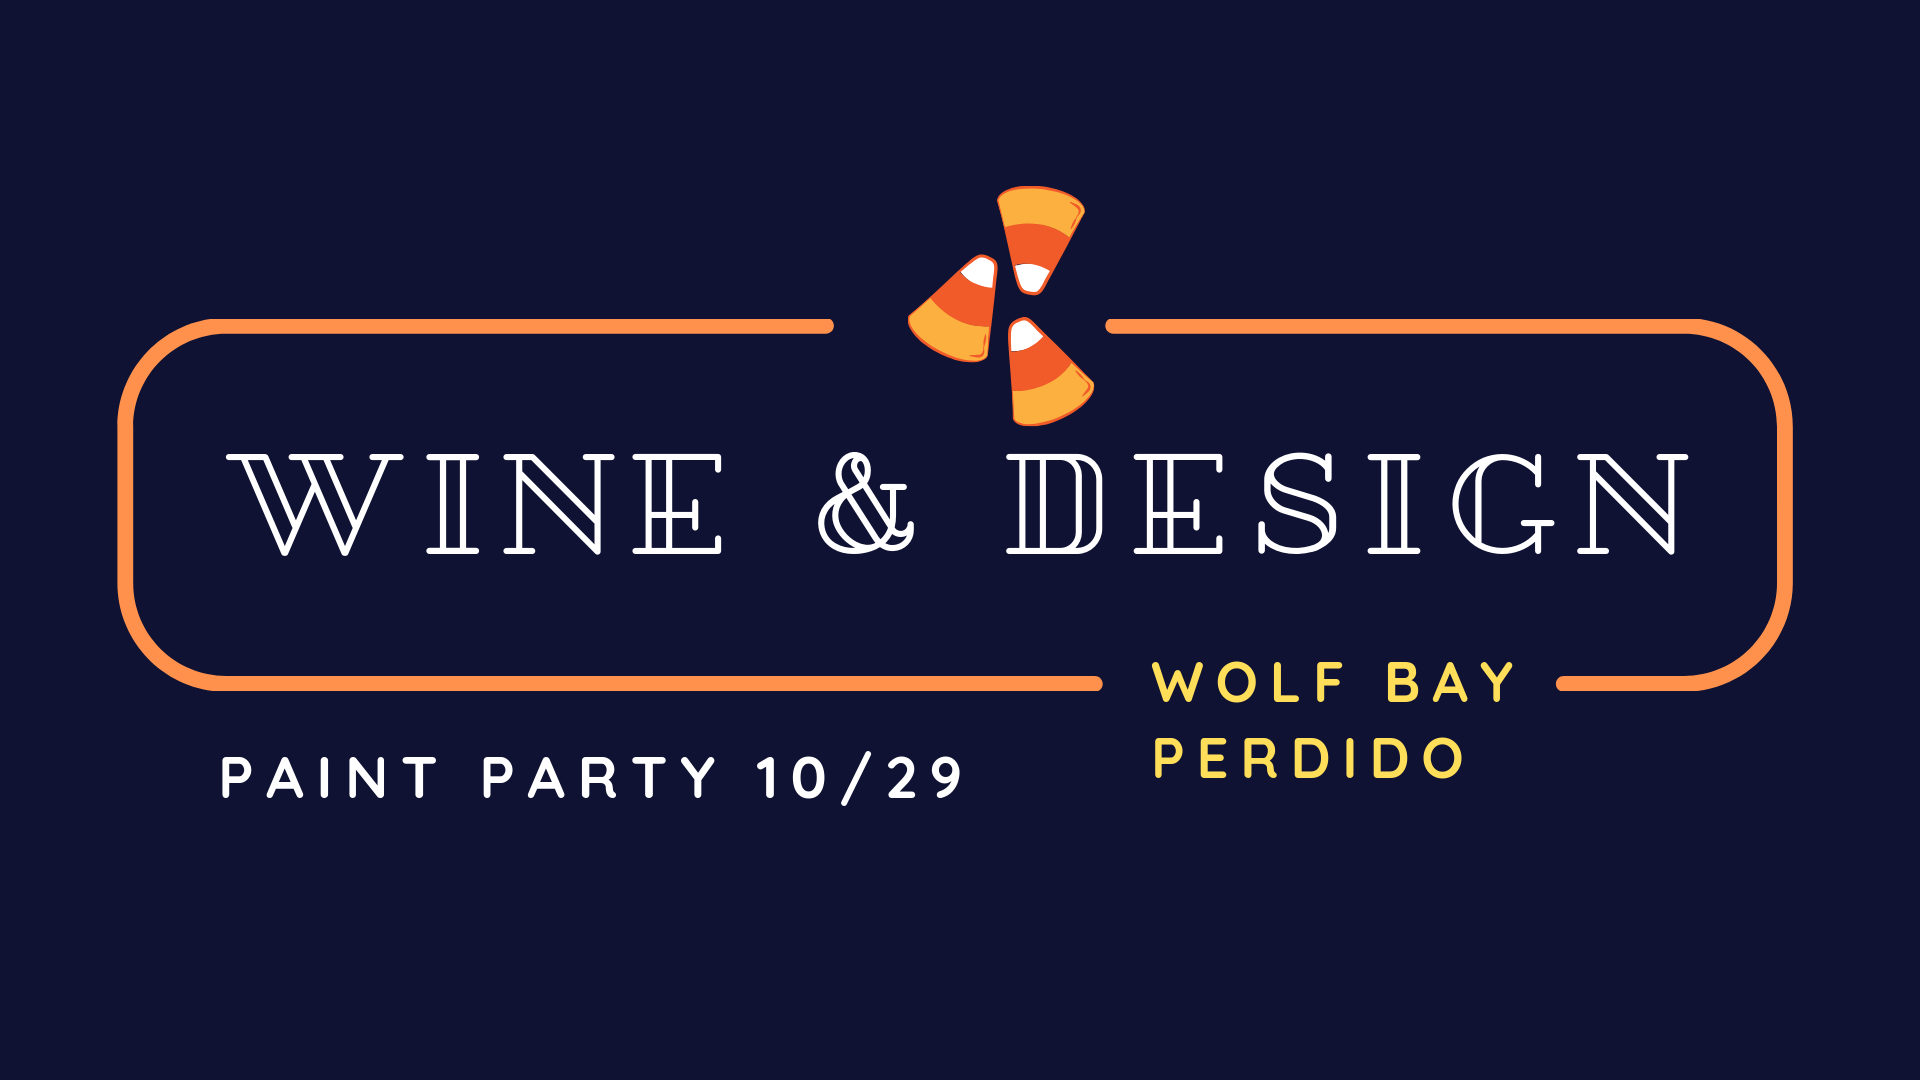 Wine and Design Paint Party at Wolf Bay (Perdido)